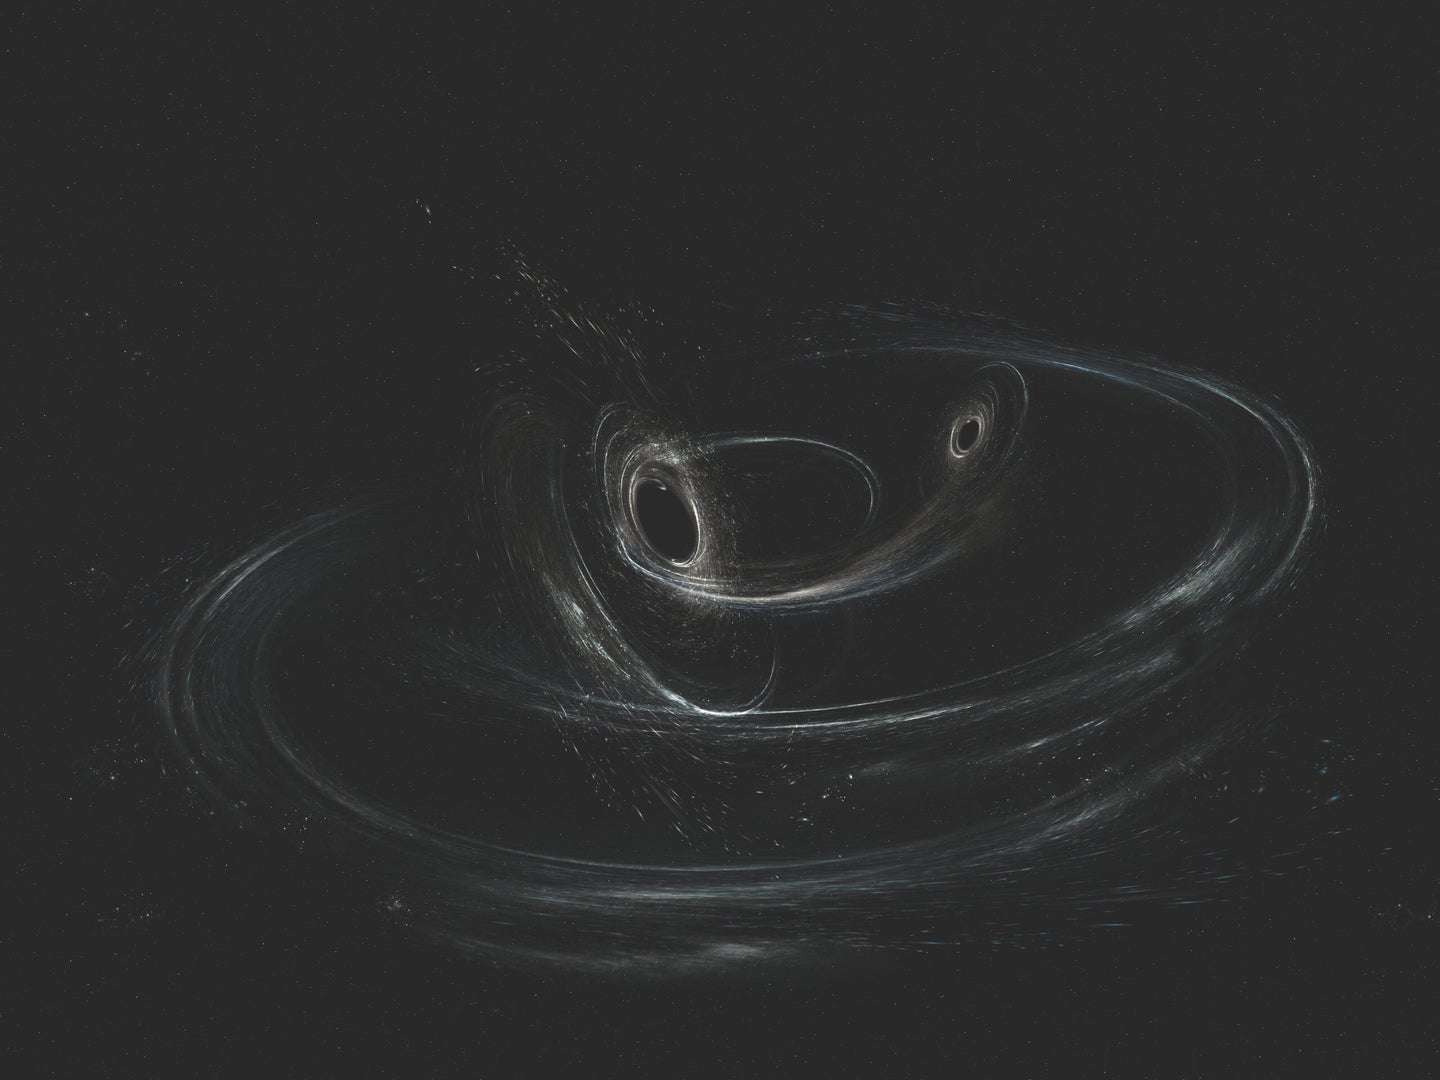 two black holes orbiting each other